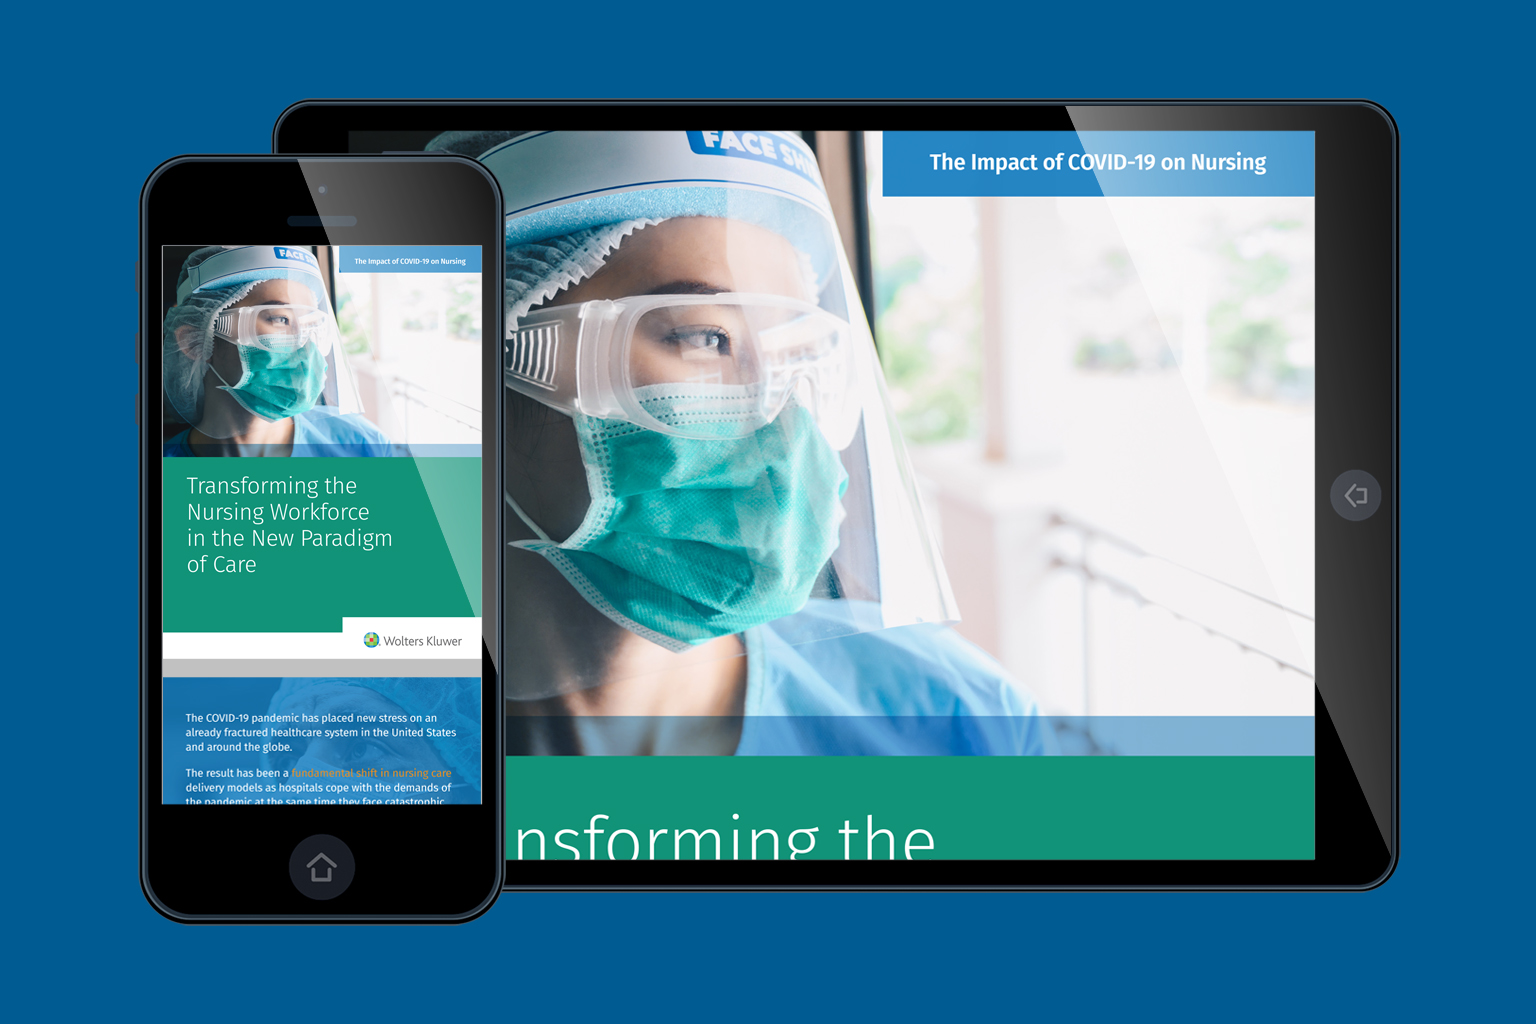 Transforming the Nursing Workforce in the New Paradigm of Care eBook cover shown on mobile and tablet devices